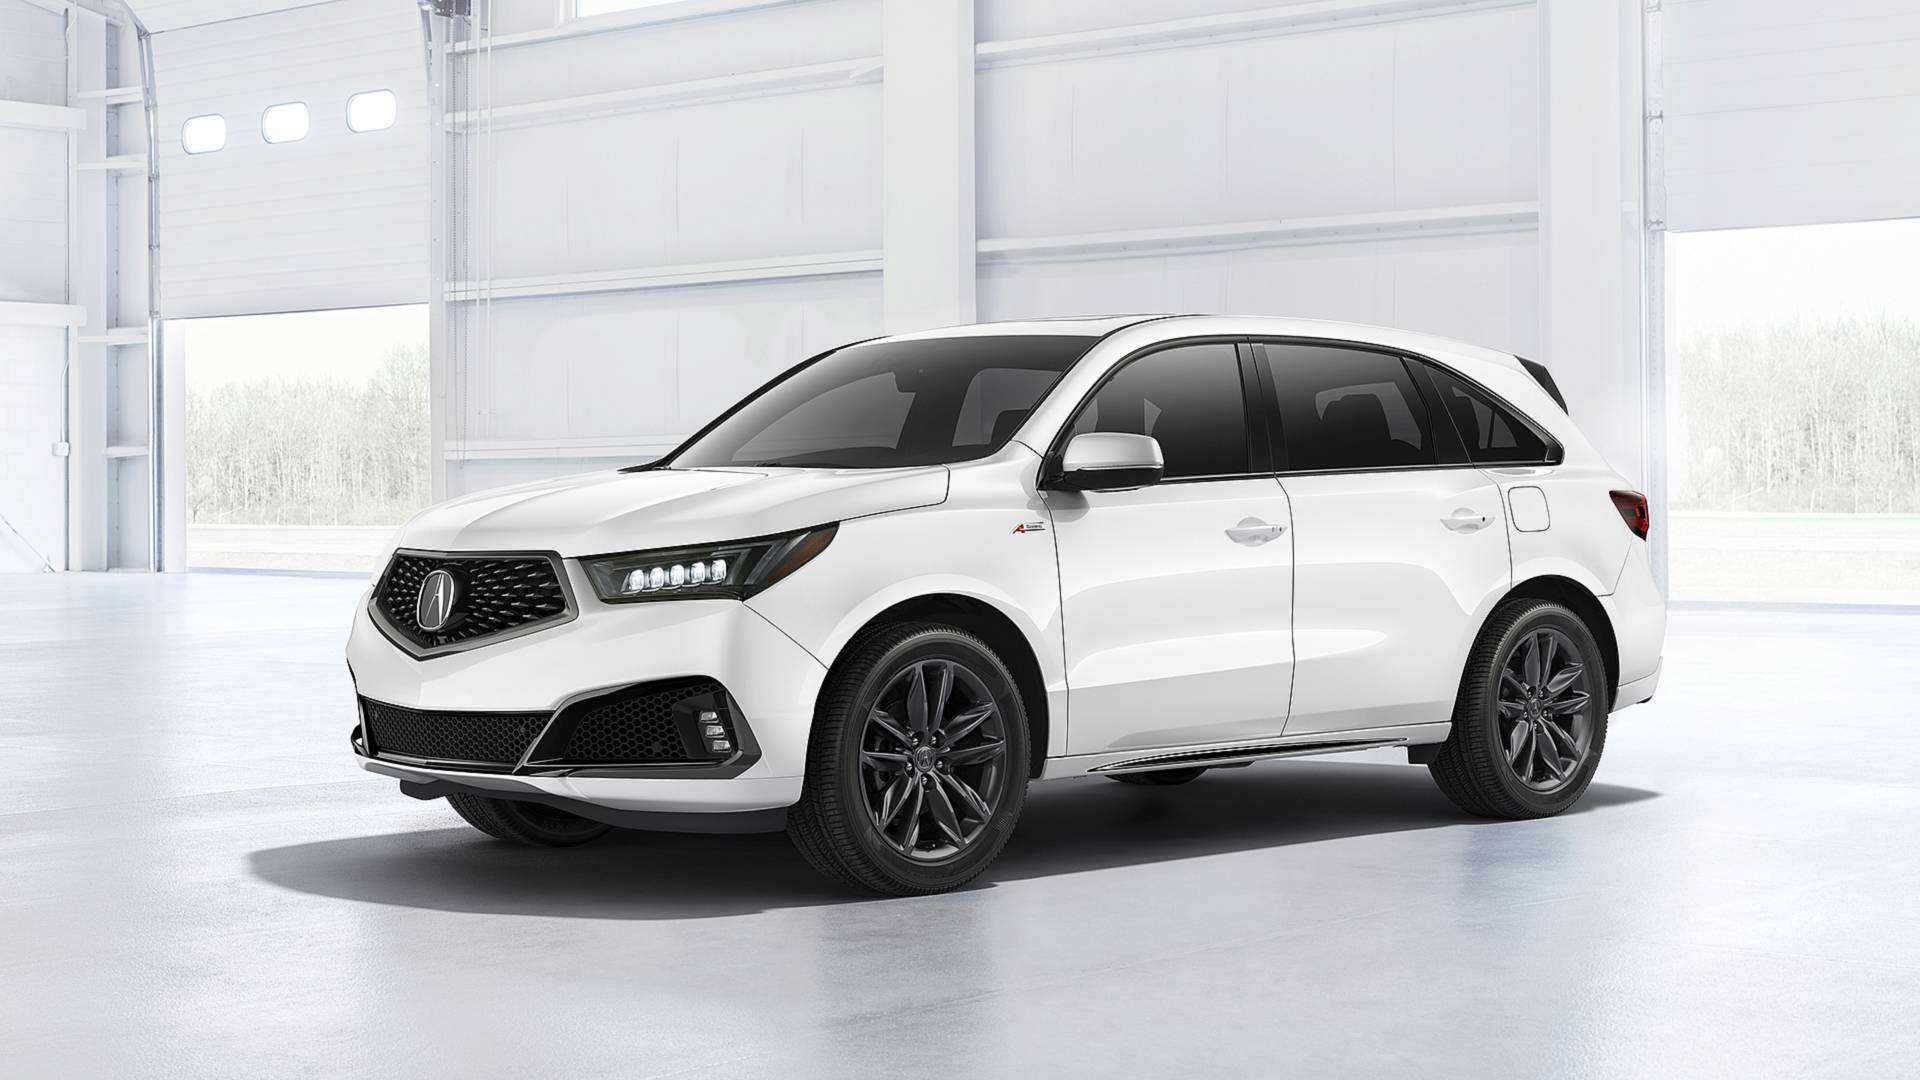 92 New 2019 Acura Mdx Release Date Speed Test with 2019 Acura Mdx Release Date